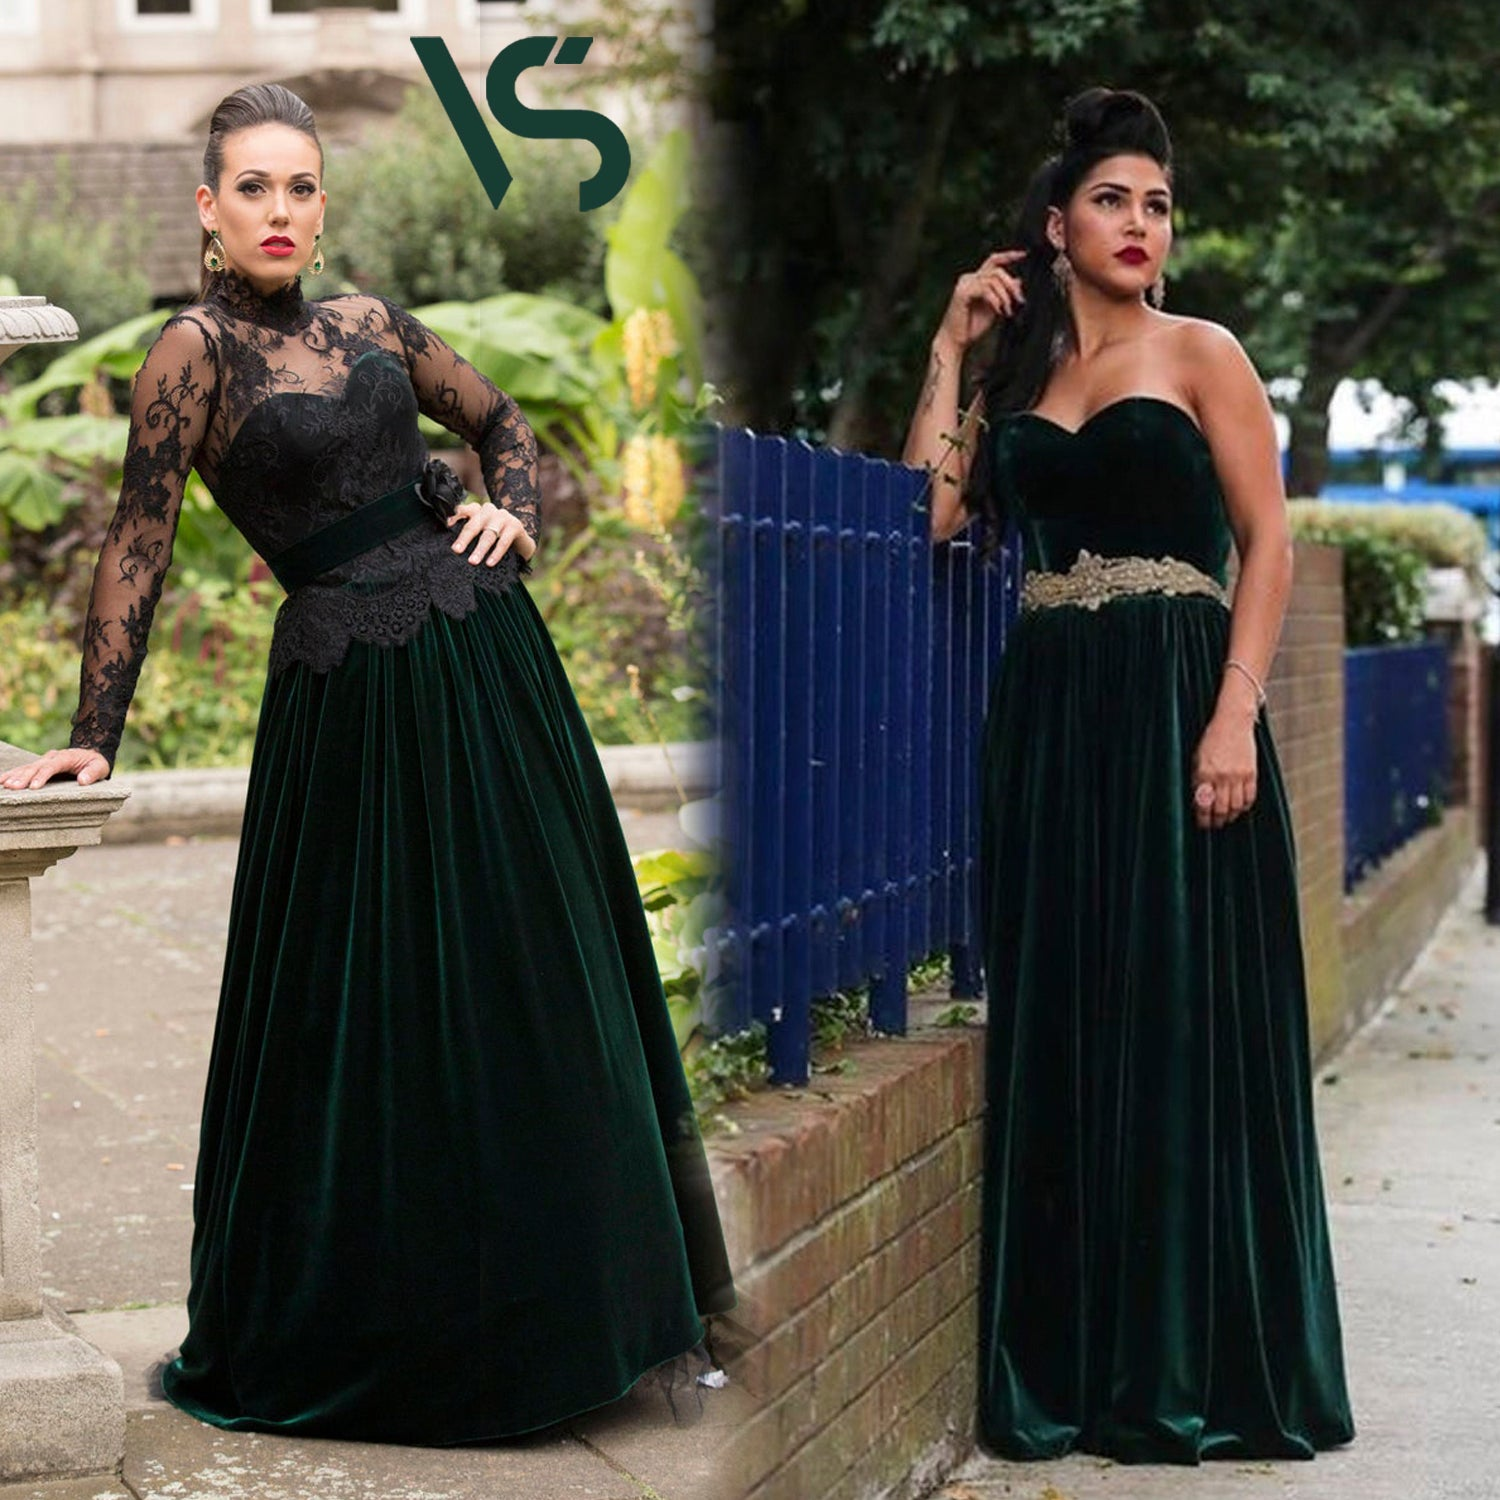 Green prom dress, ball gown, evening gown, party dress, long dress, velvet dress, strapless dress, available made-to-measure only